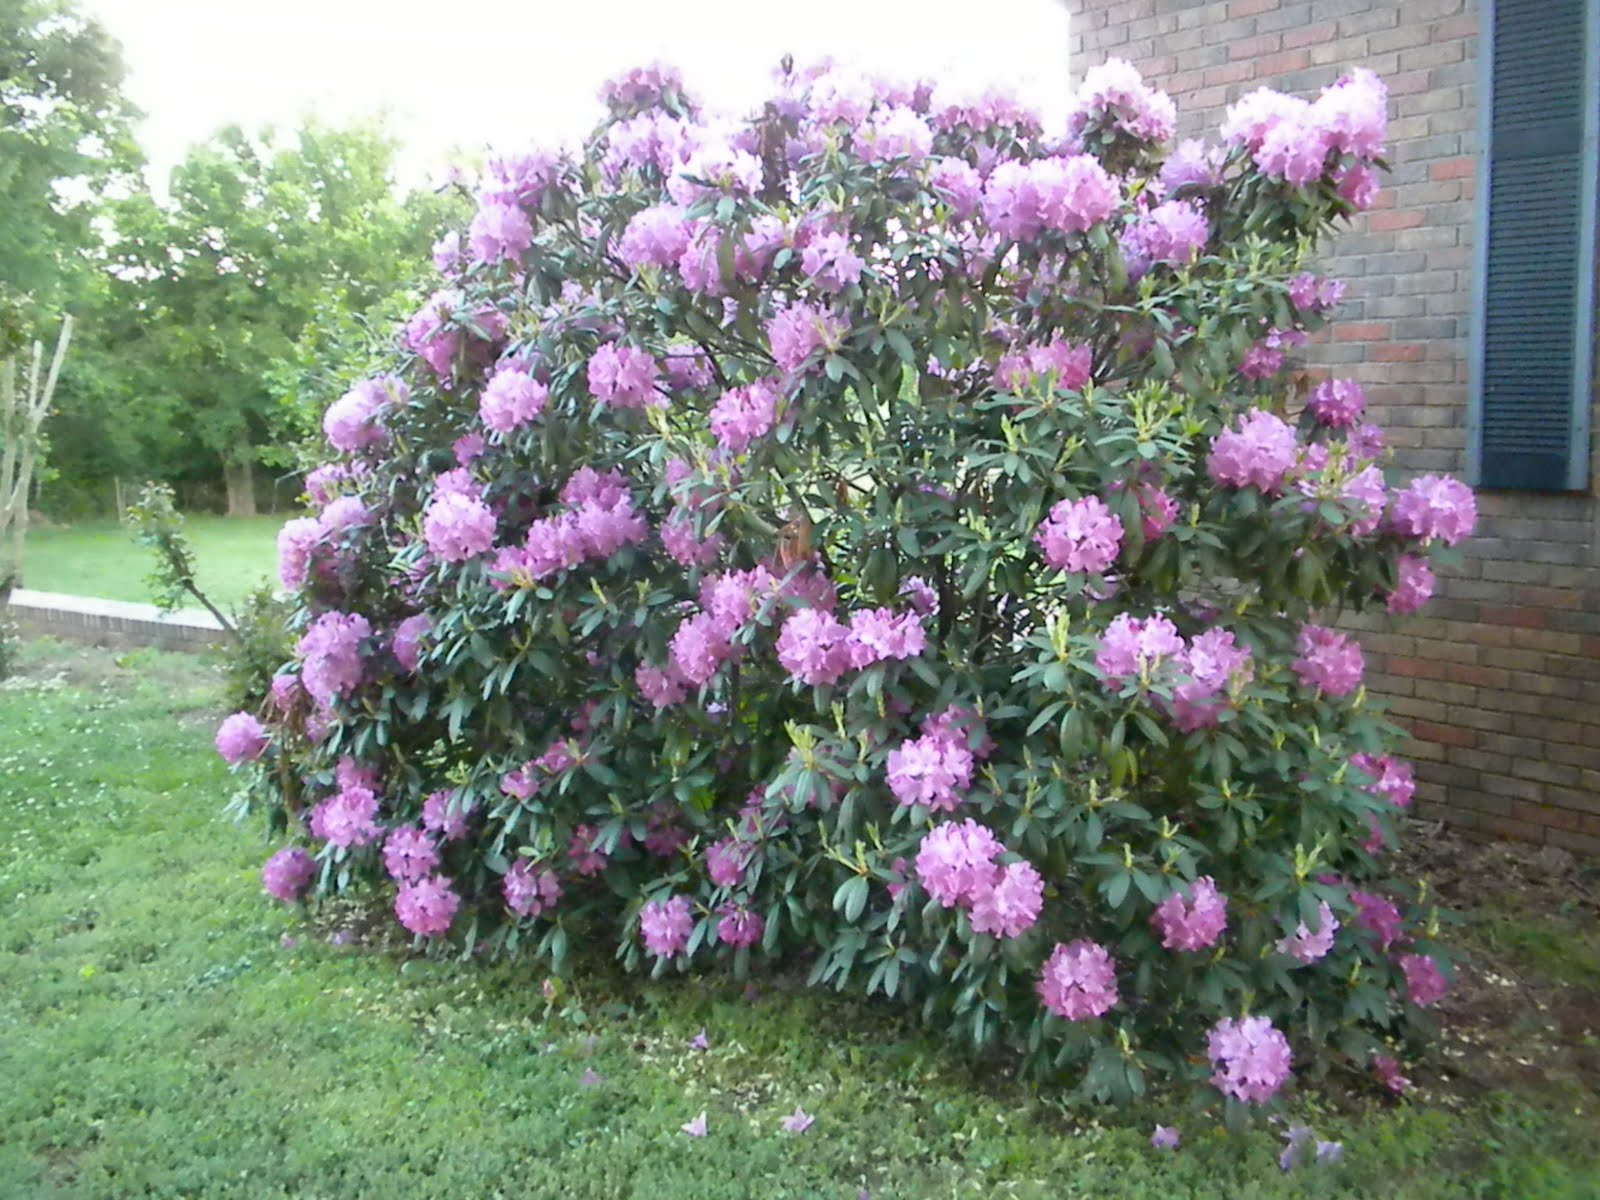 A Meek Perspective: Rhododendron Bush